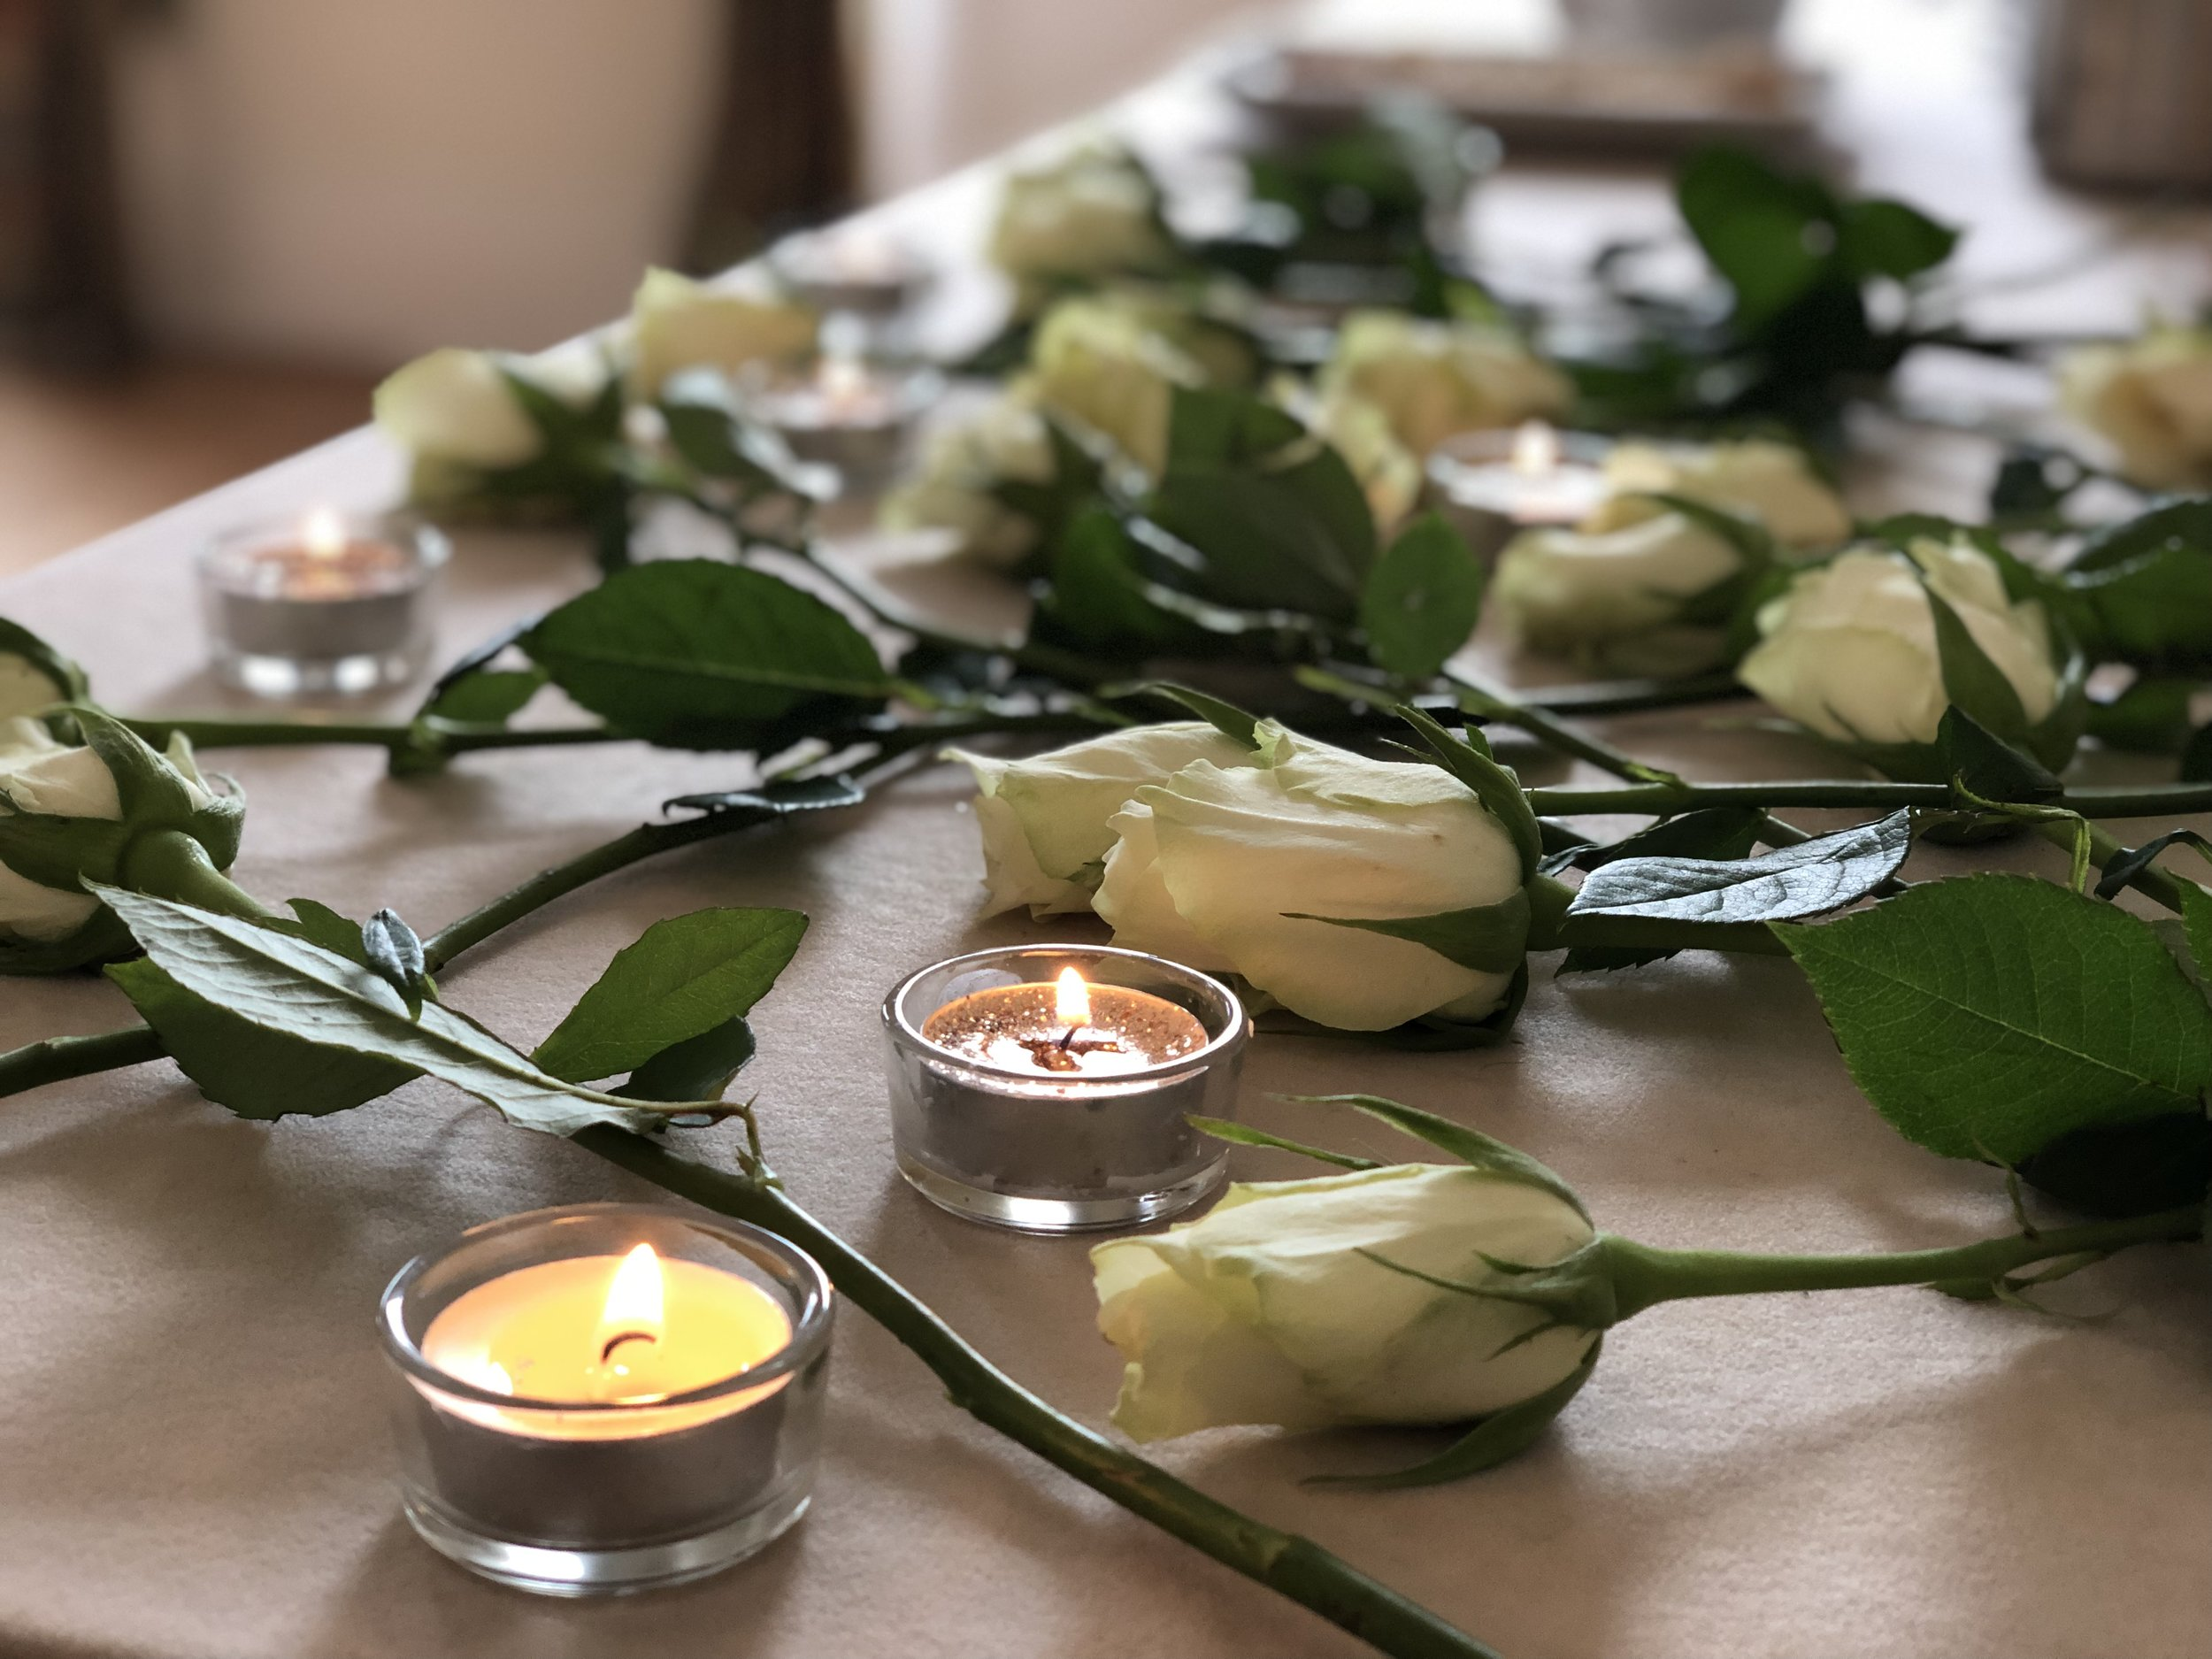 Spending time with the person who has died